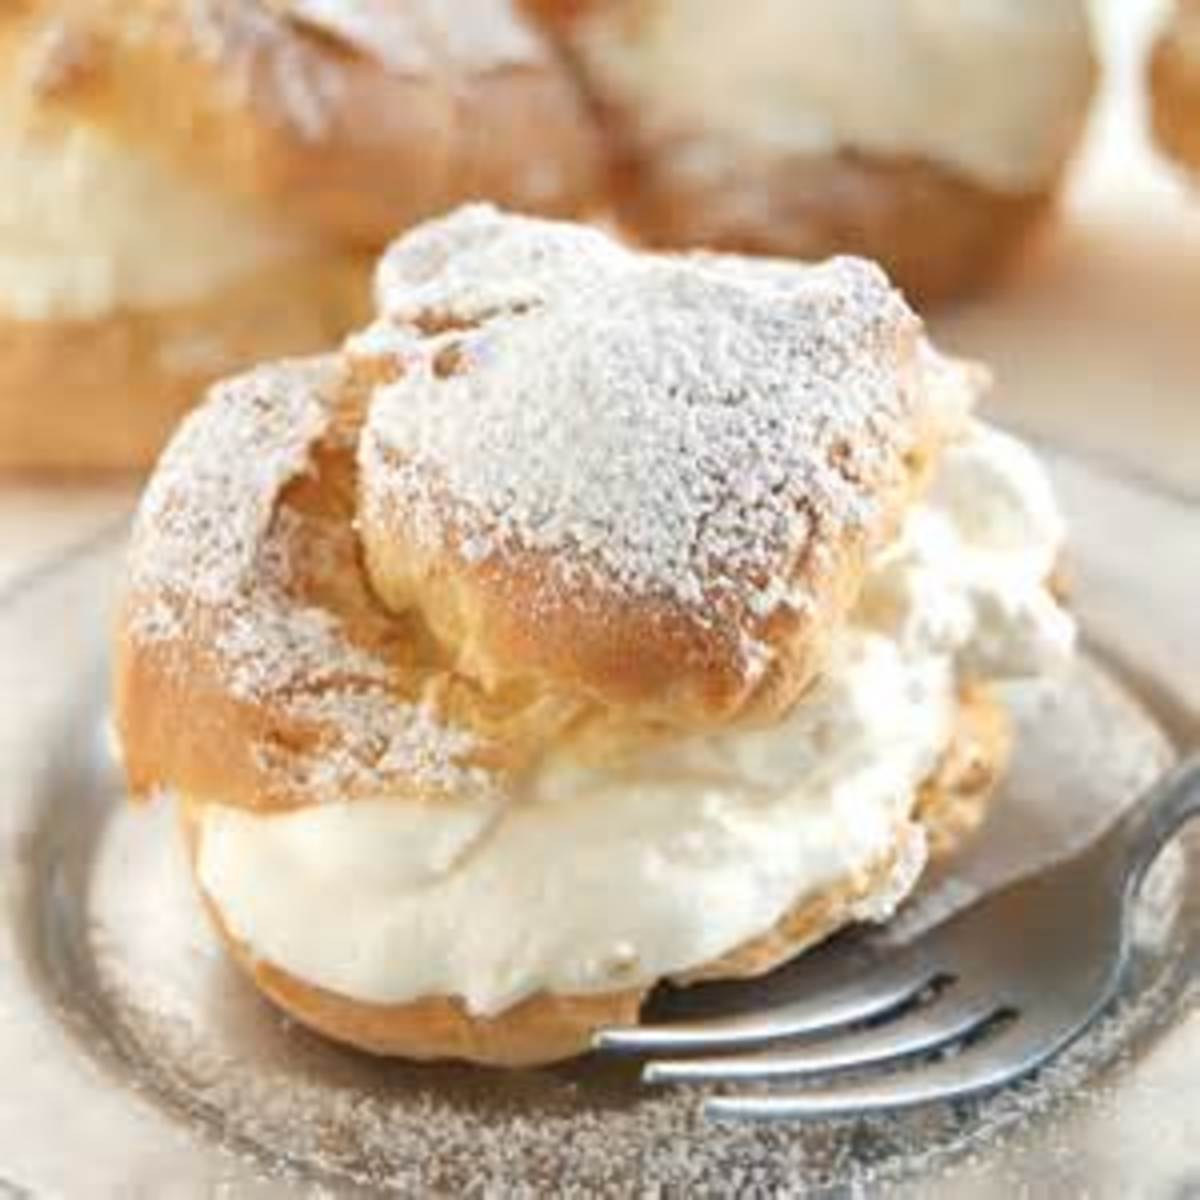 Cream Puffs or Eclairs With Filling